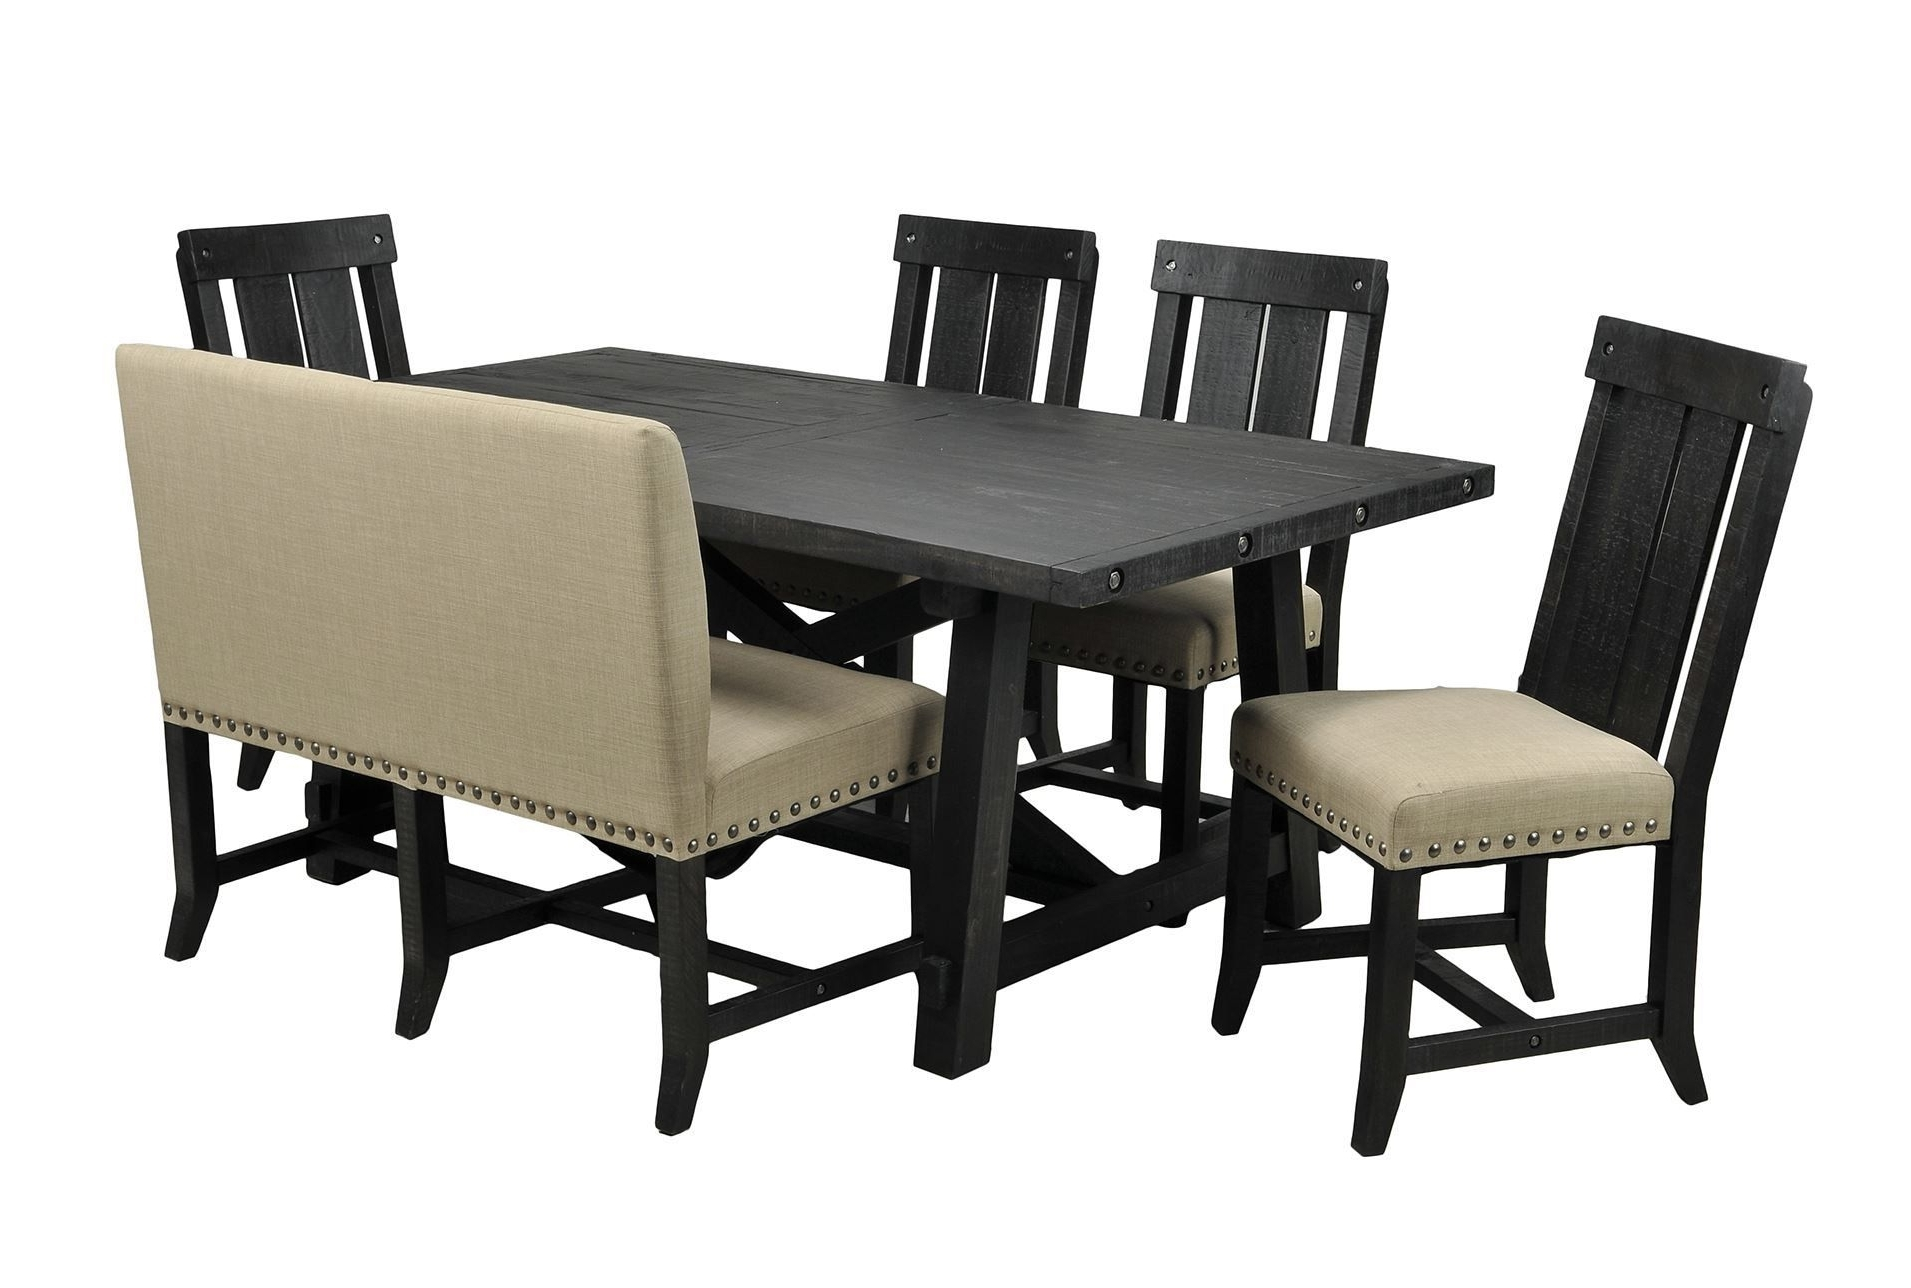 Jaxon 6 Piece Rectangle Dining Set W/bench & Wood Chairs, Café With Best And Newest Jaxon 6 Piece Rectangle Dining Sets With Bench & Uph Chairs (Gallery 5 of 25)